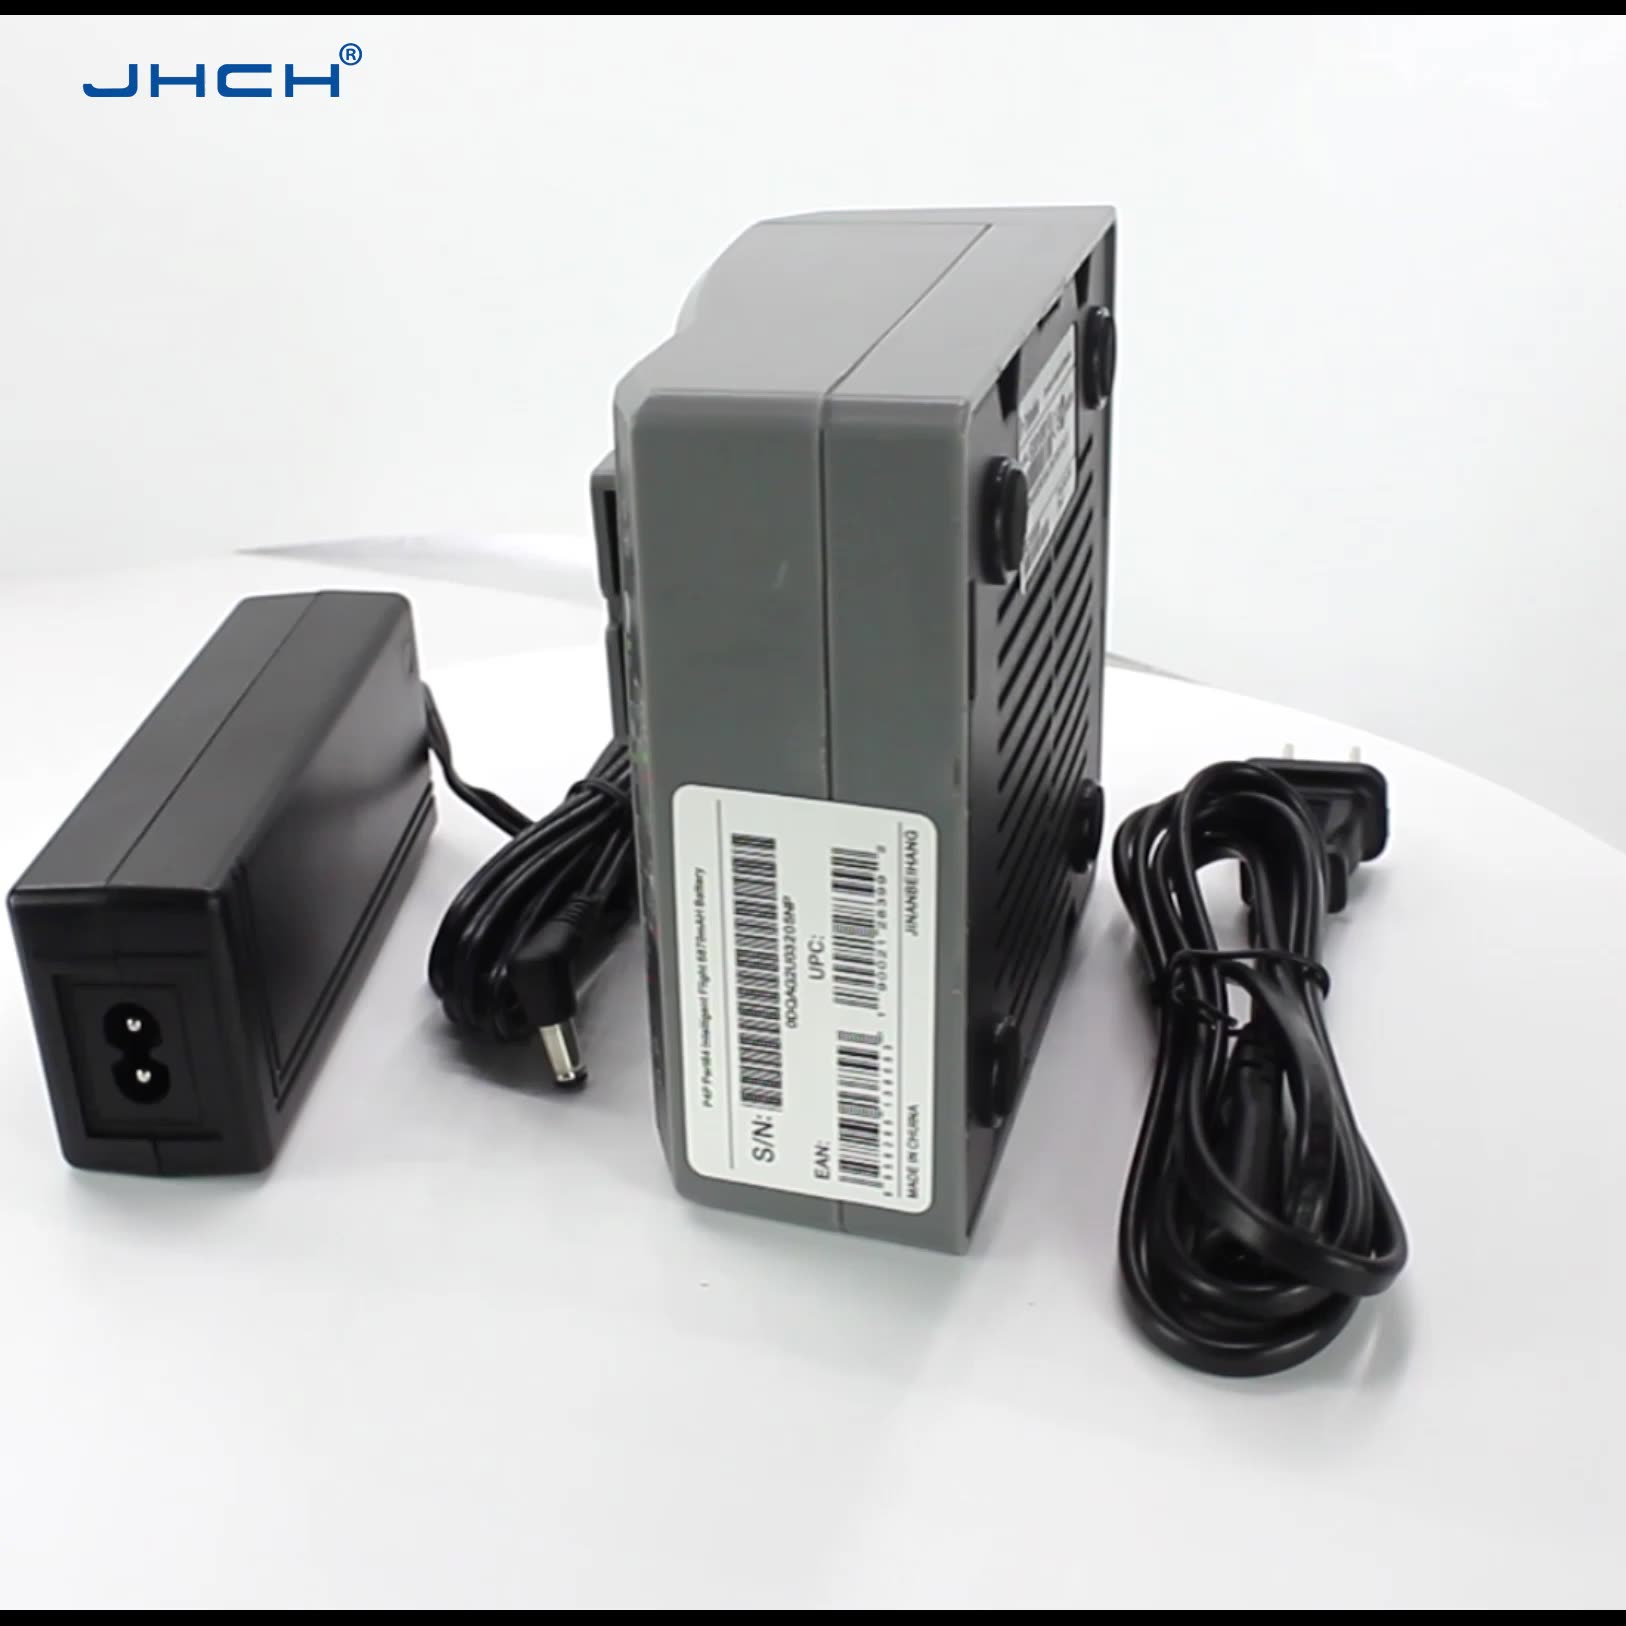 Trimble Two Slots Li-ion Battery Charger for Trimble GPS S6/S8/R10/54344/92600 Battery Charger 53018010